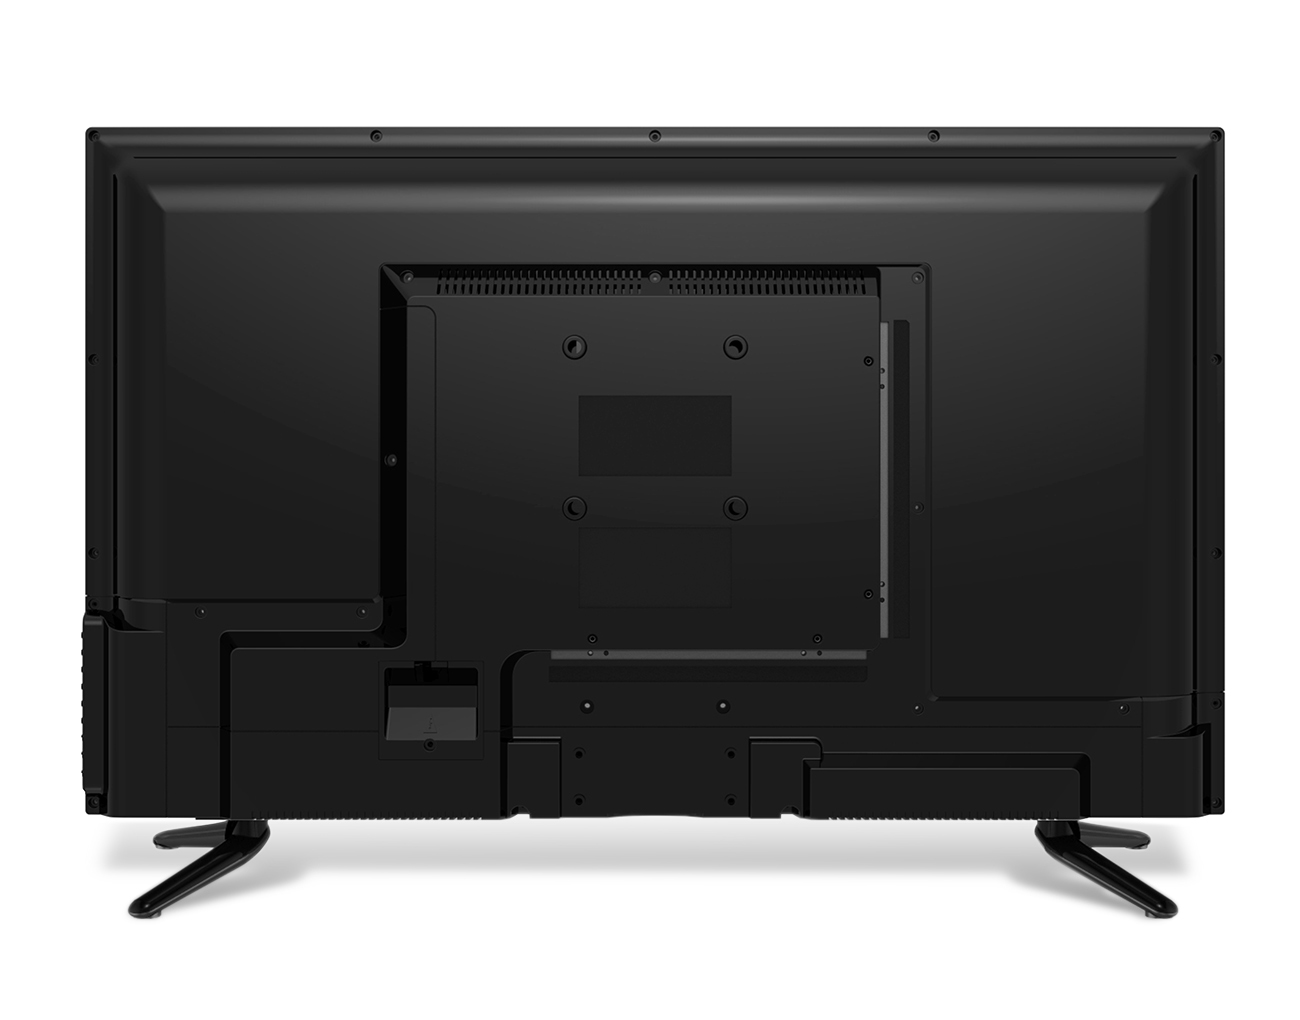 cello c43227t2 led tv 109 2 cm 43 full hd black 0 in distributor wholesale stock for. Black Bedroom Furniture Sets. Home Design Ideas